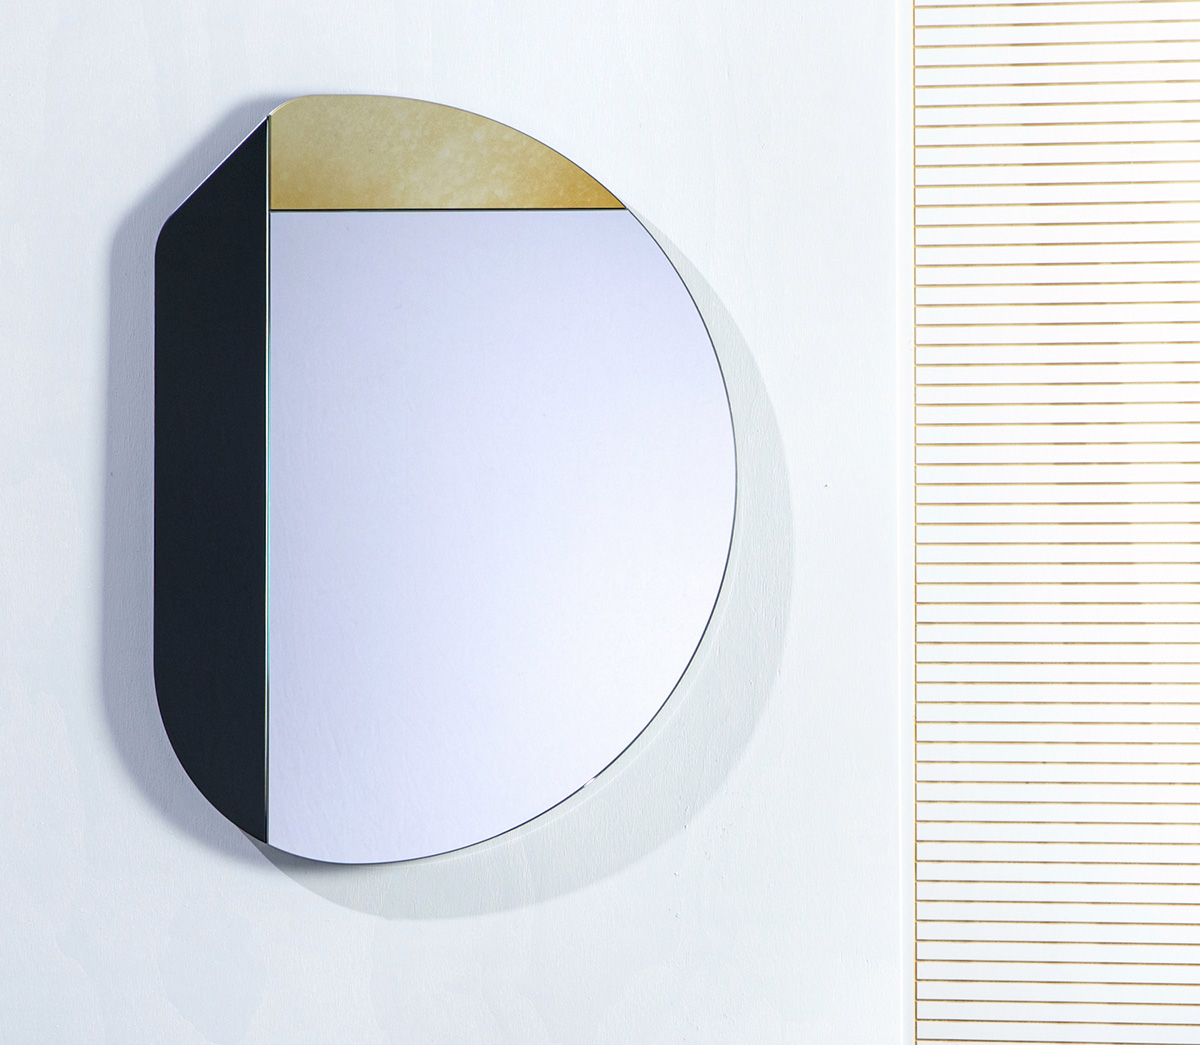 Wrong-Geometries-Mirrors-Collective-04